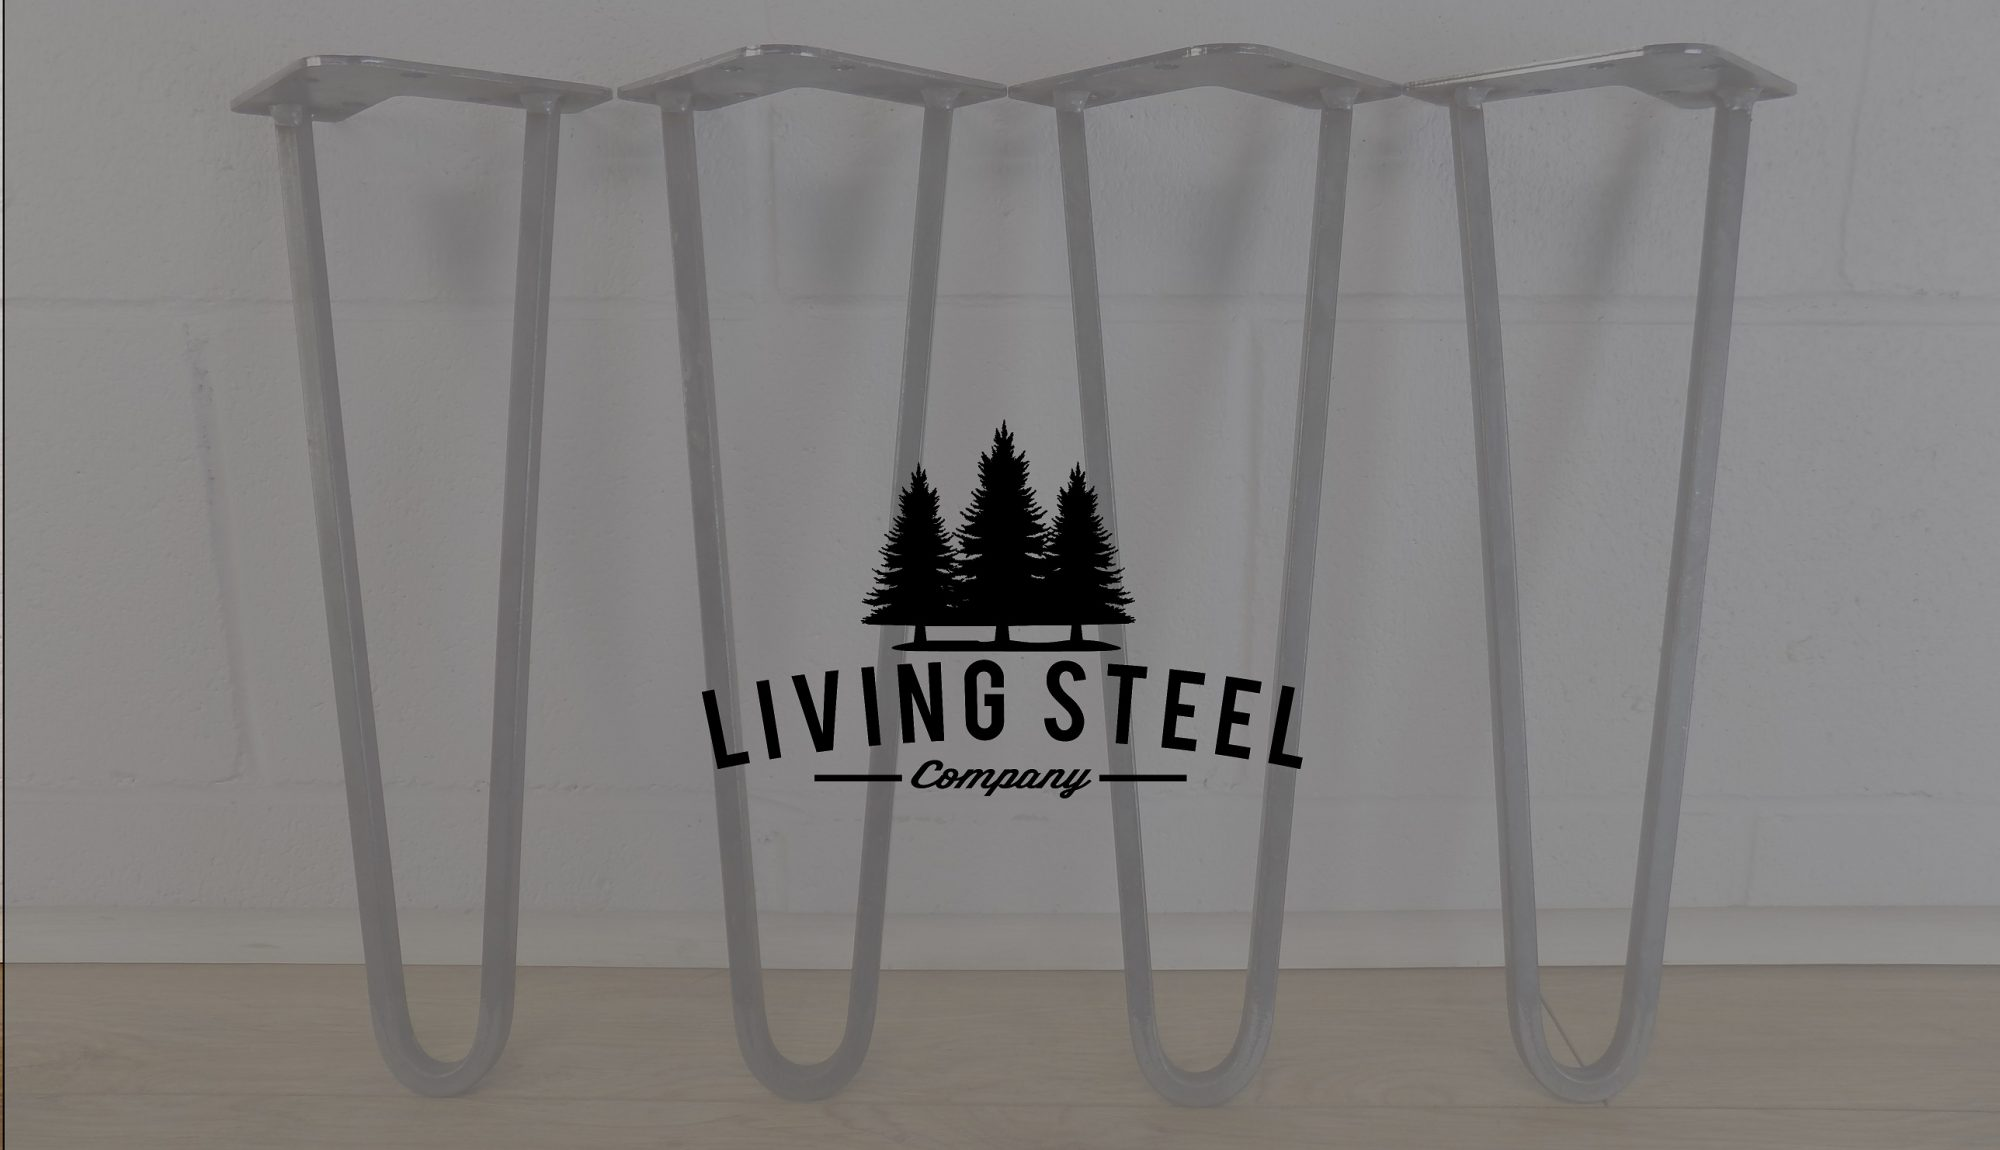 Living Steel Company